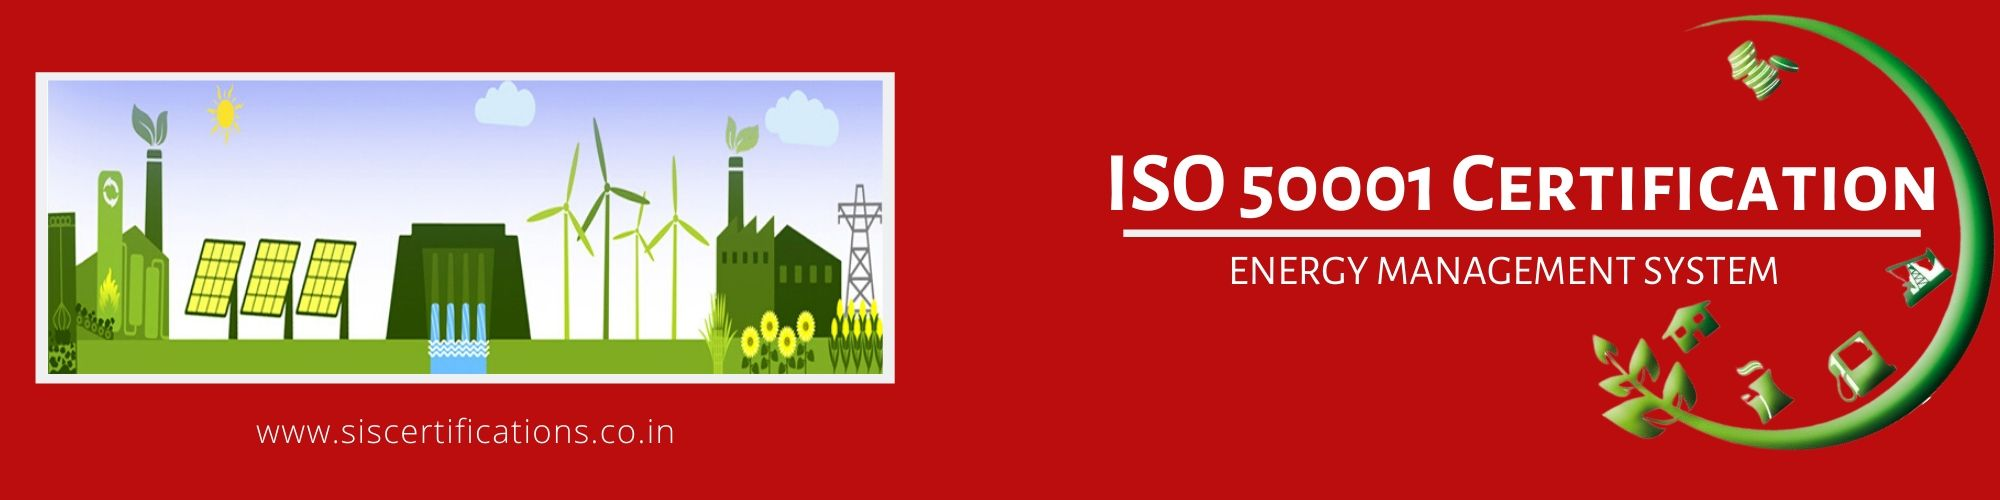 ISO 50001 Certification , ISO 50001 Certification